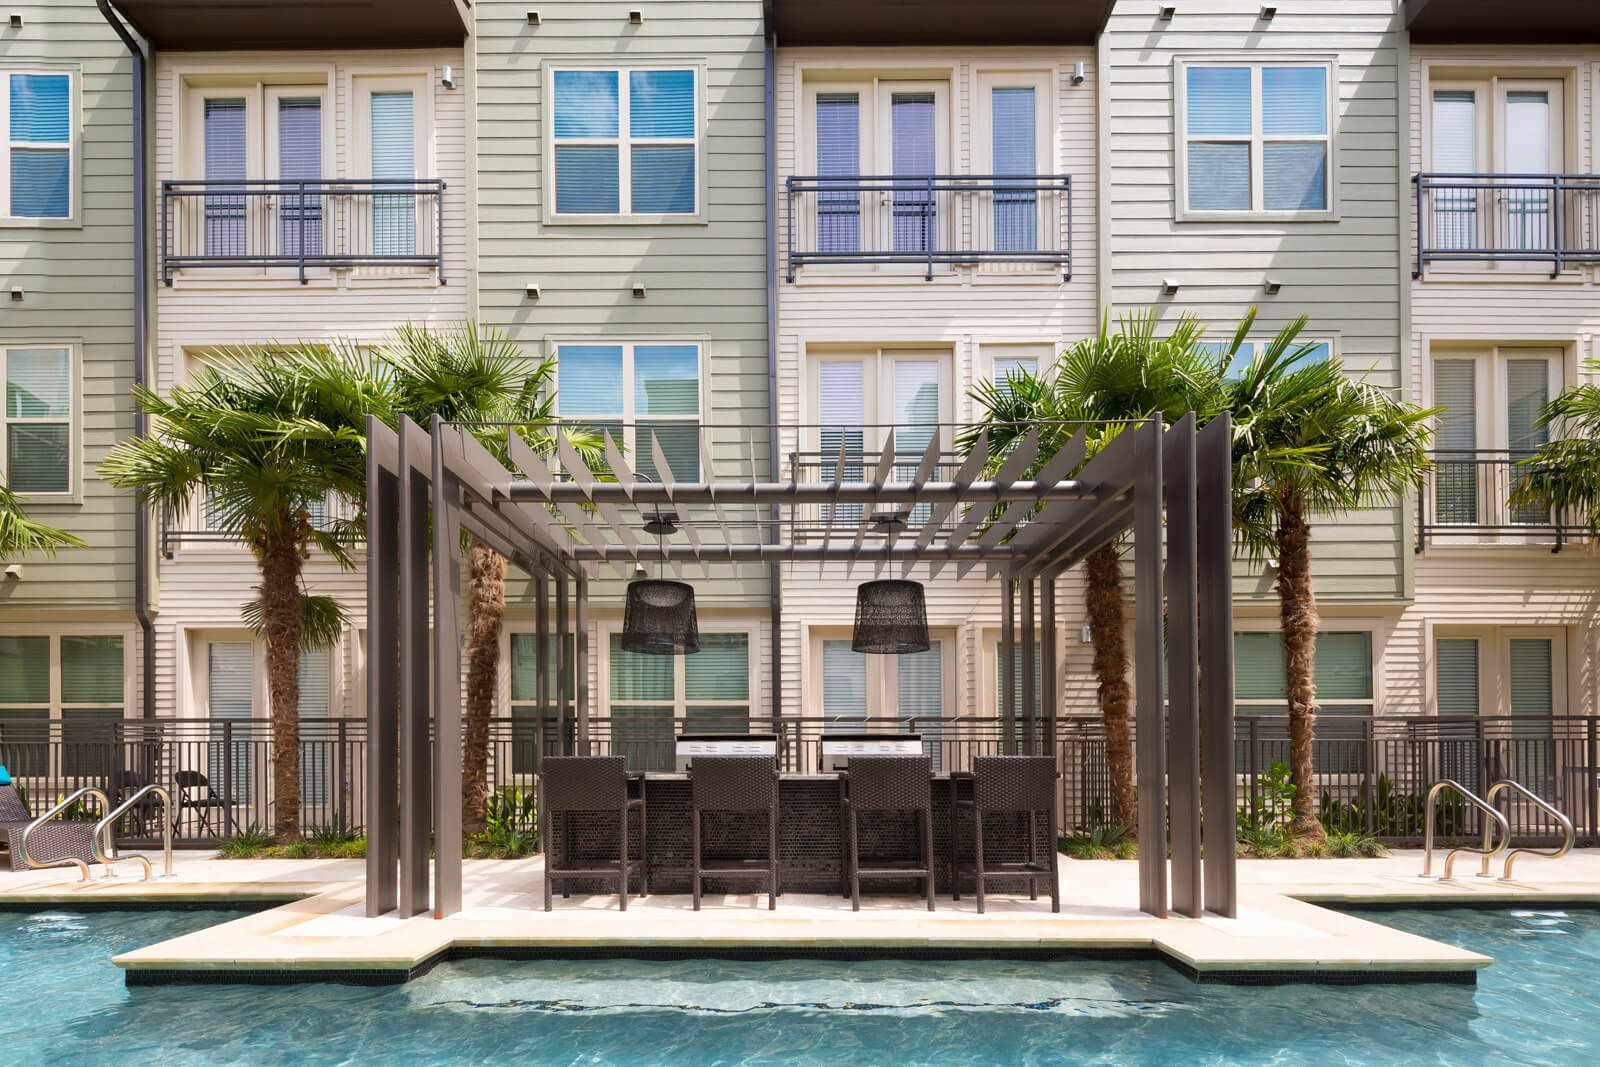 Poolside Grilling Stations and Dining Island at Windsor West Lemmon, 75209, TX